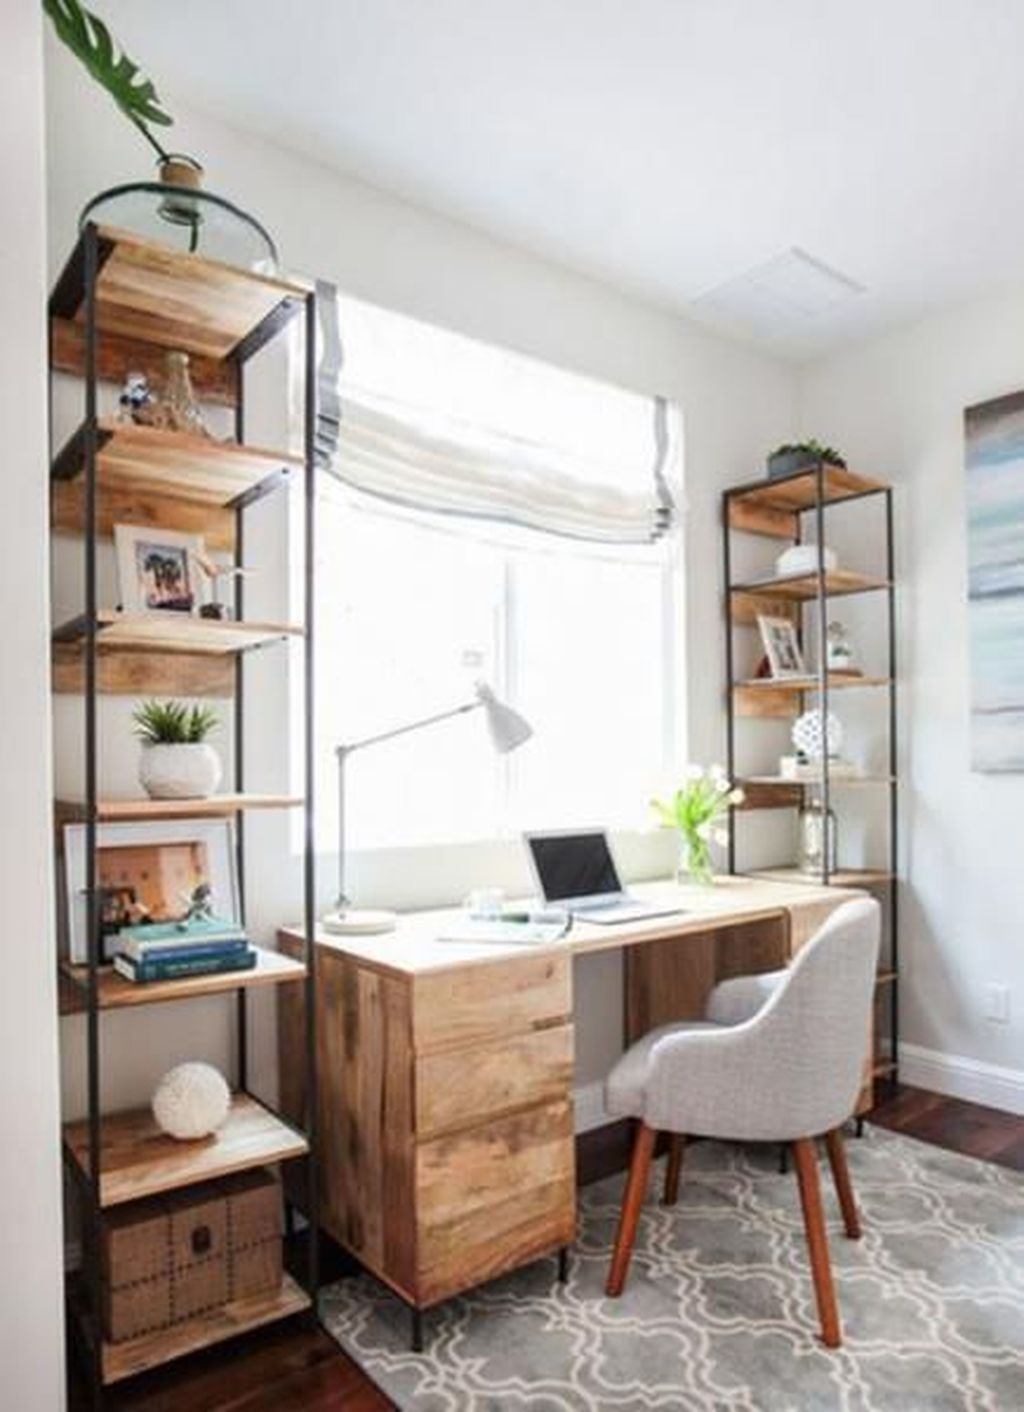 Admirable Modern Home Office Design Ideas That You Like 15